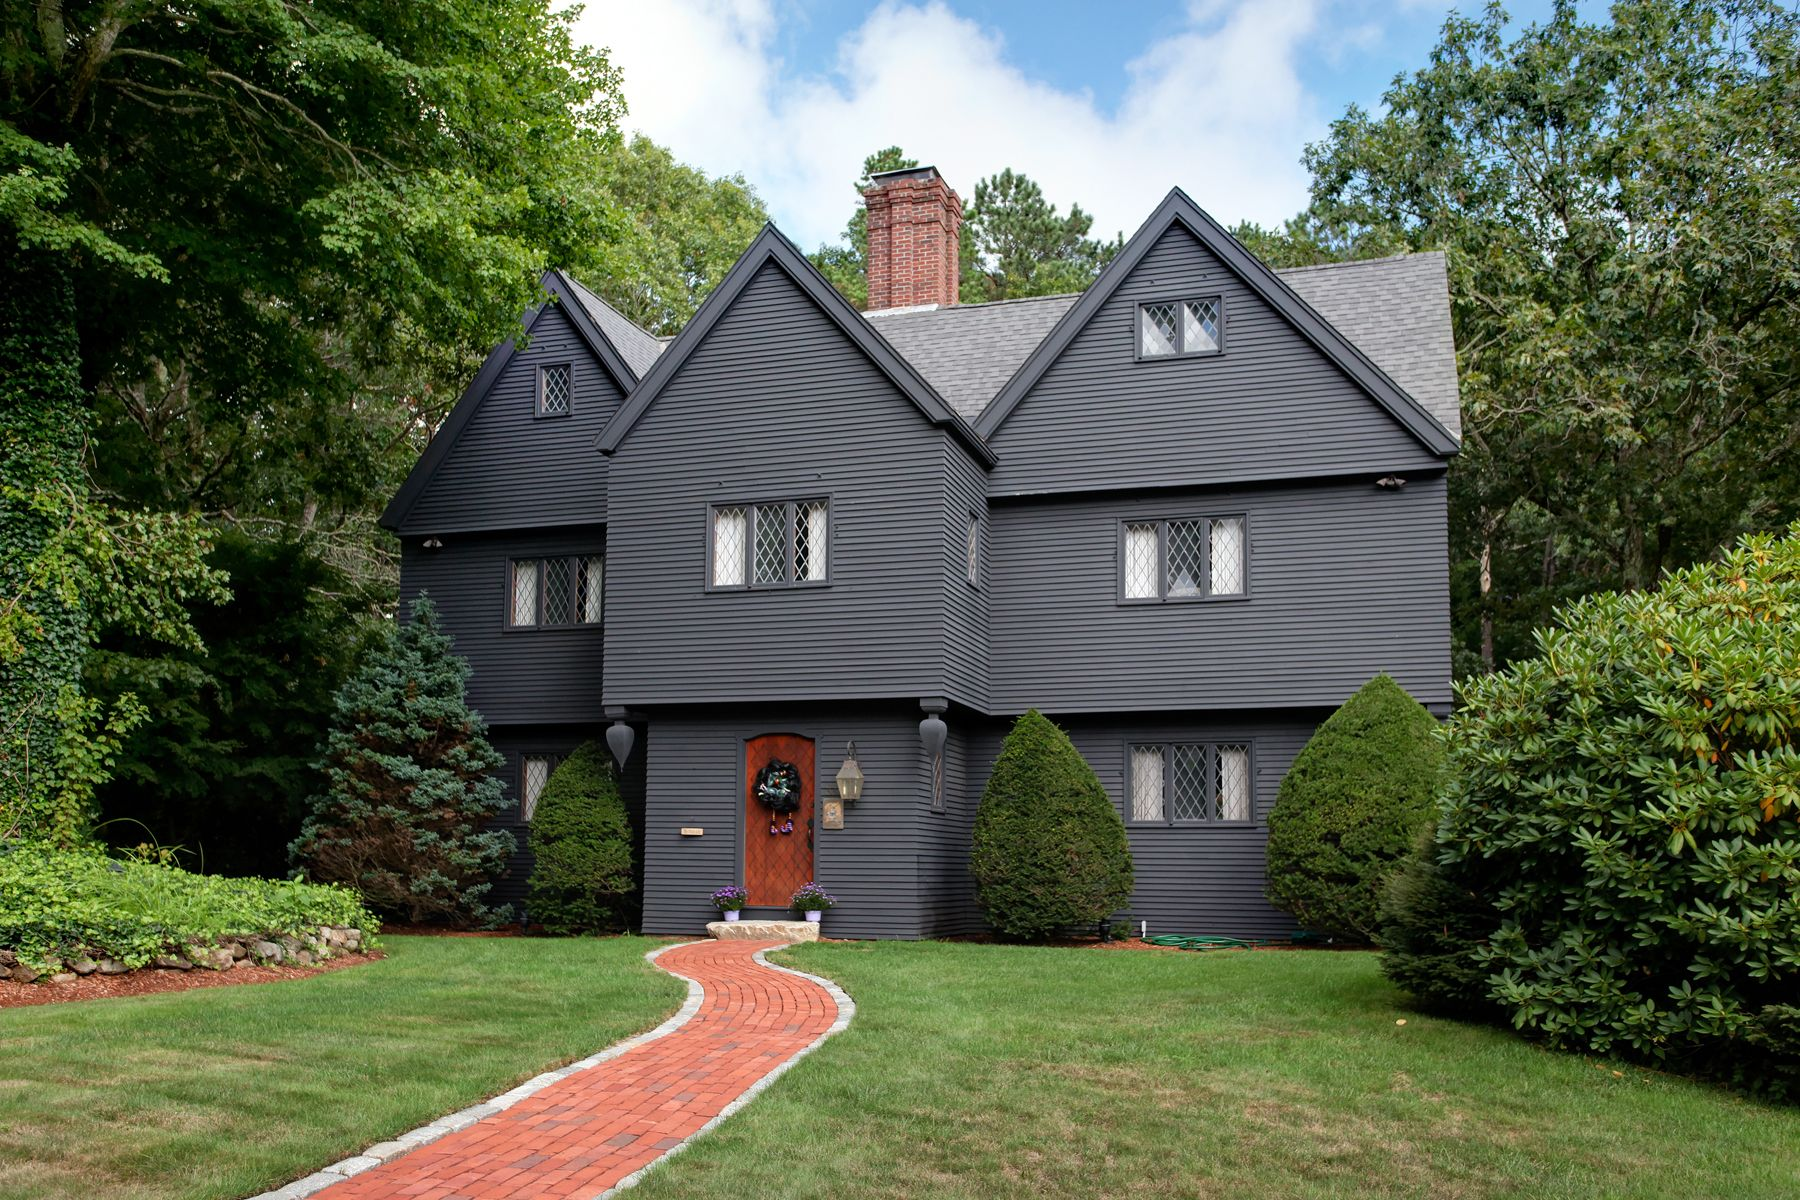 Single Family Home for Active at 33 Tarragon Drive, Sandwich, MA 33 Tarragon Drive East Sandwich, Massachusetts 02537 United States